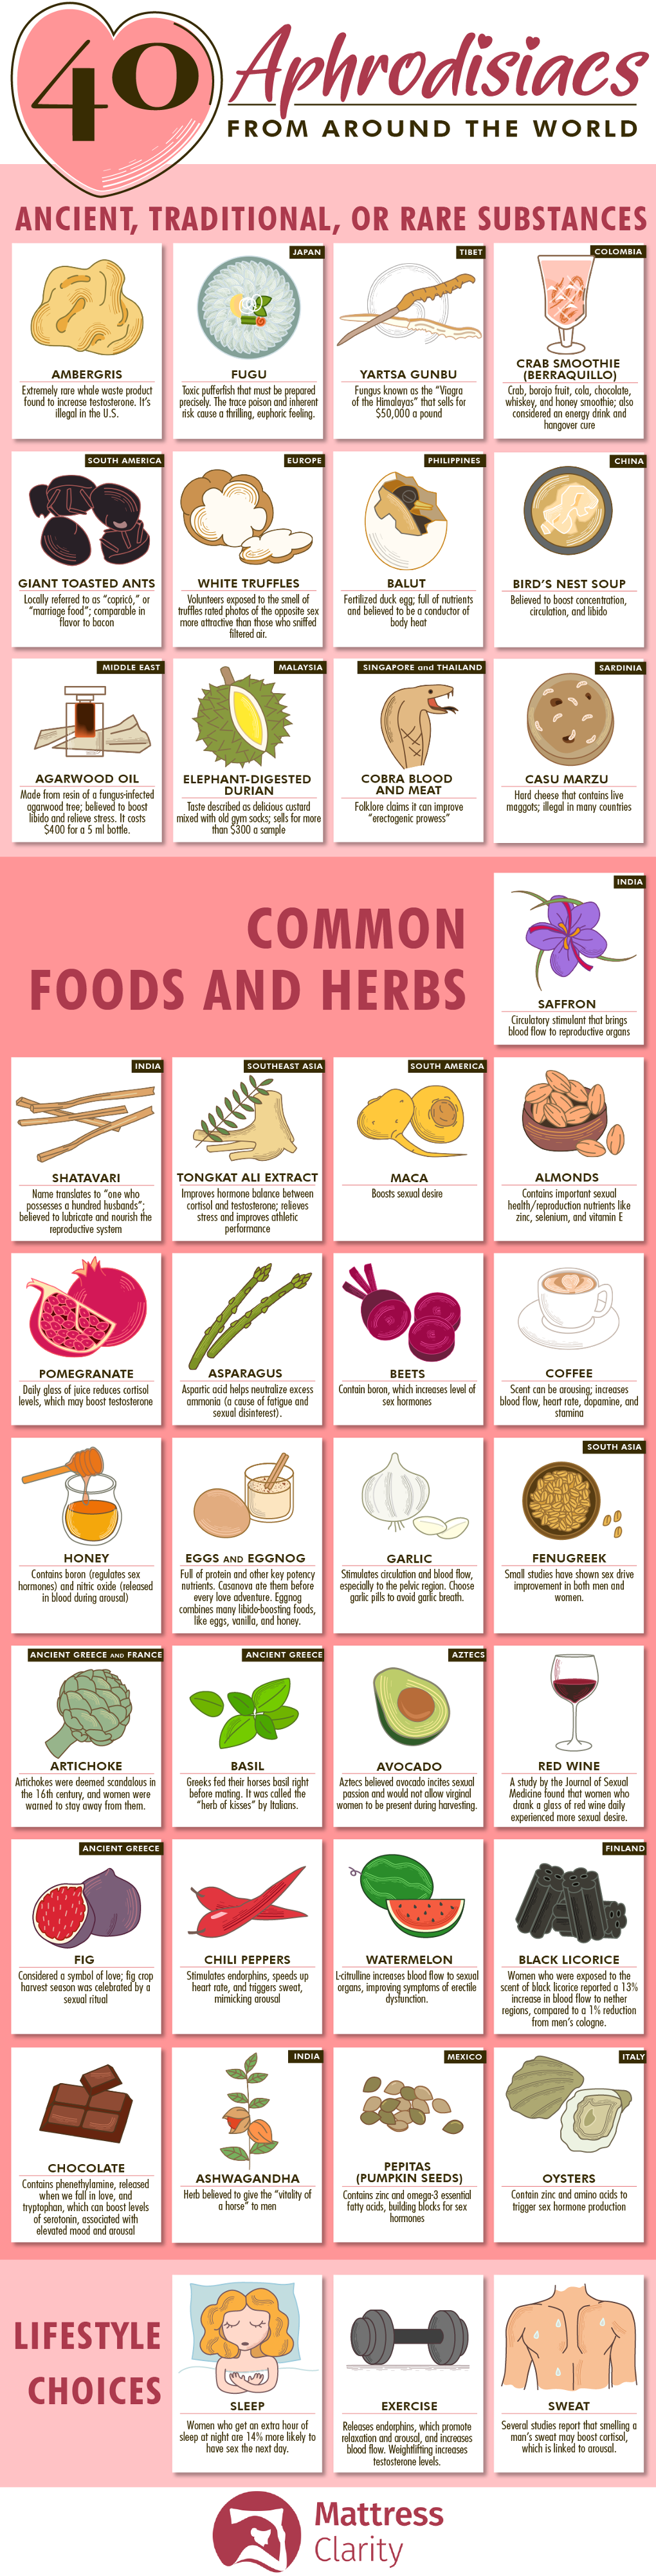 40 Aphrodisiacs From Around the World